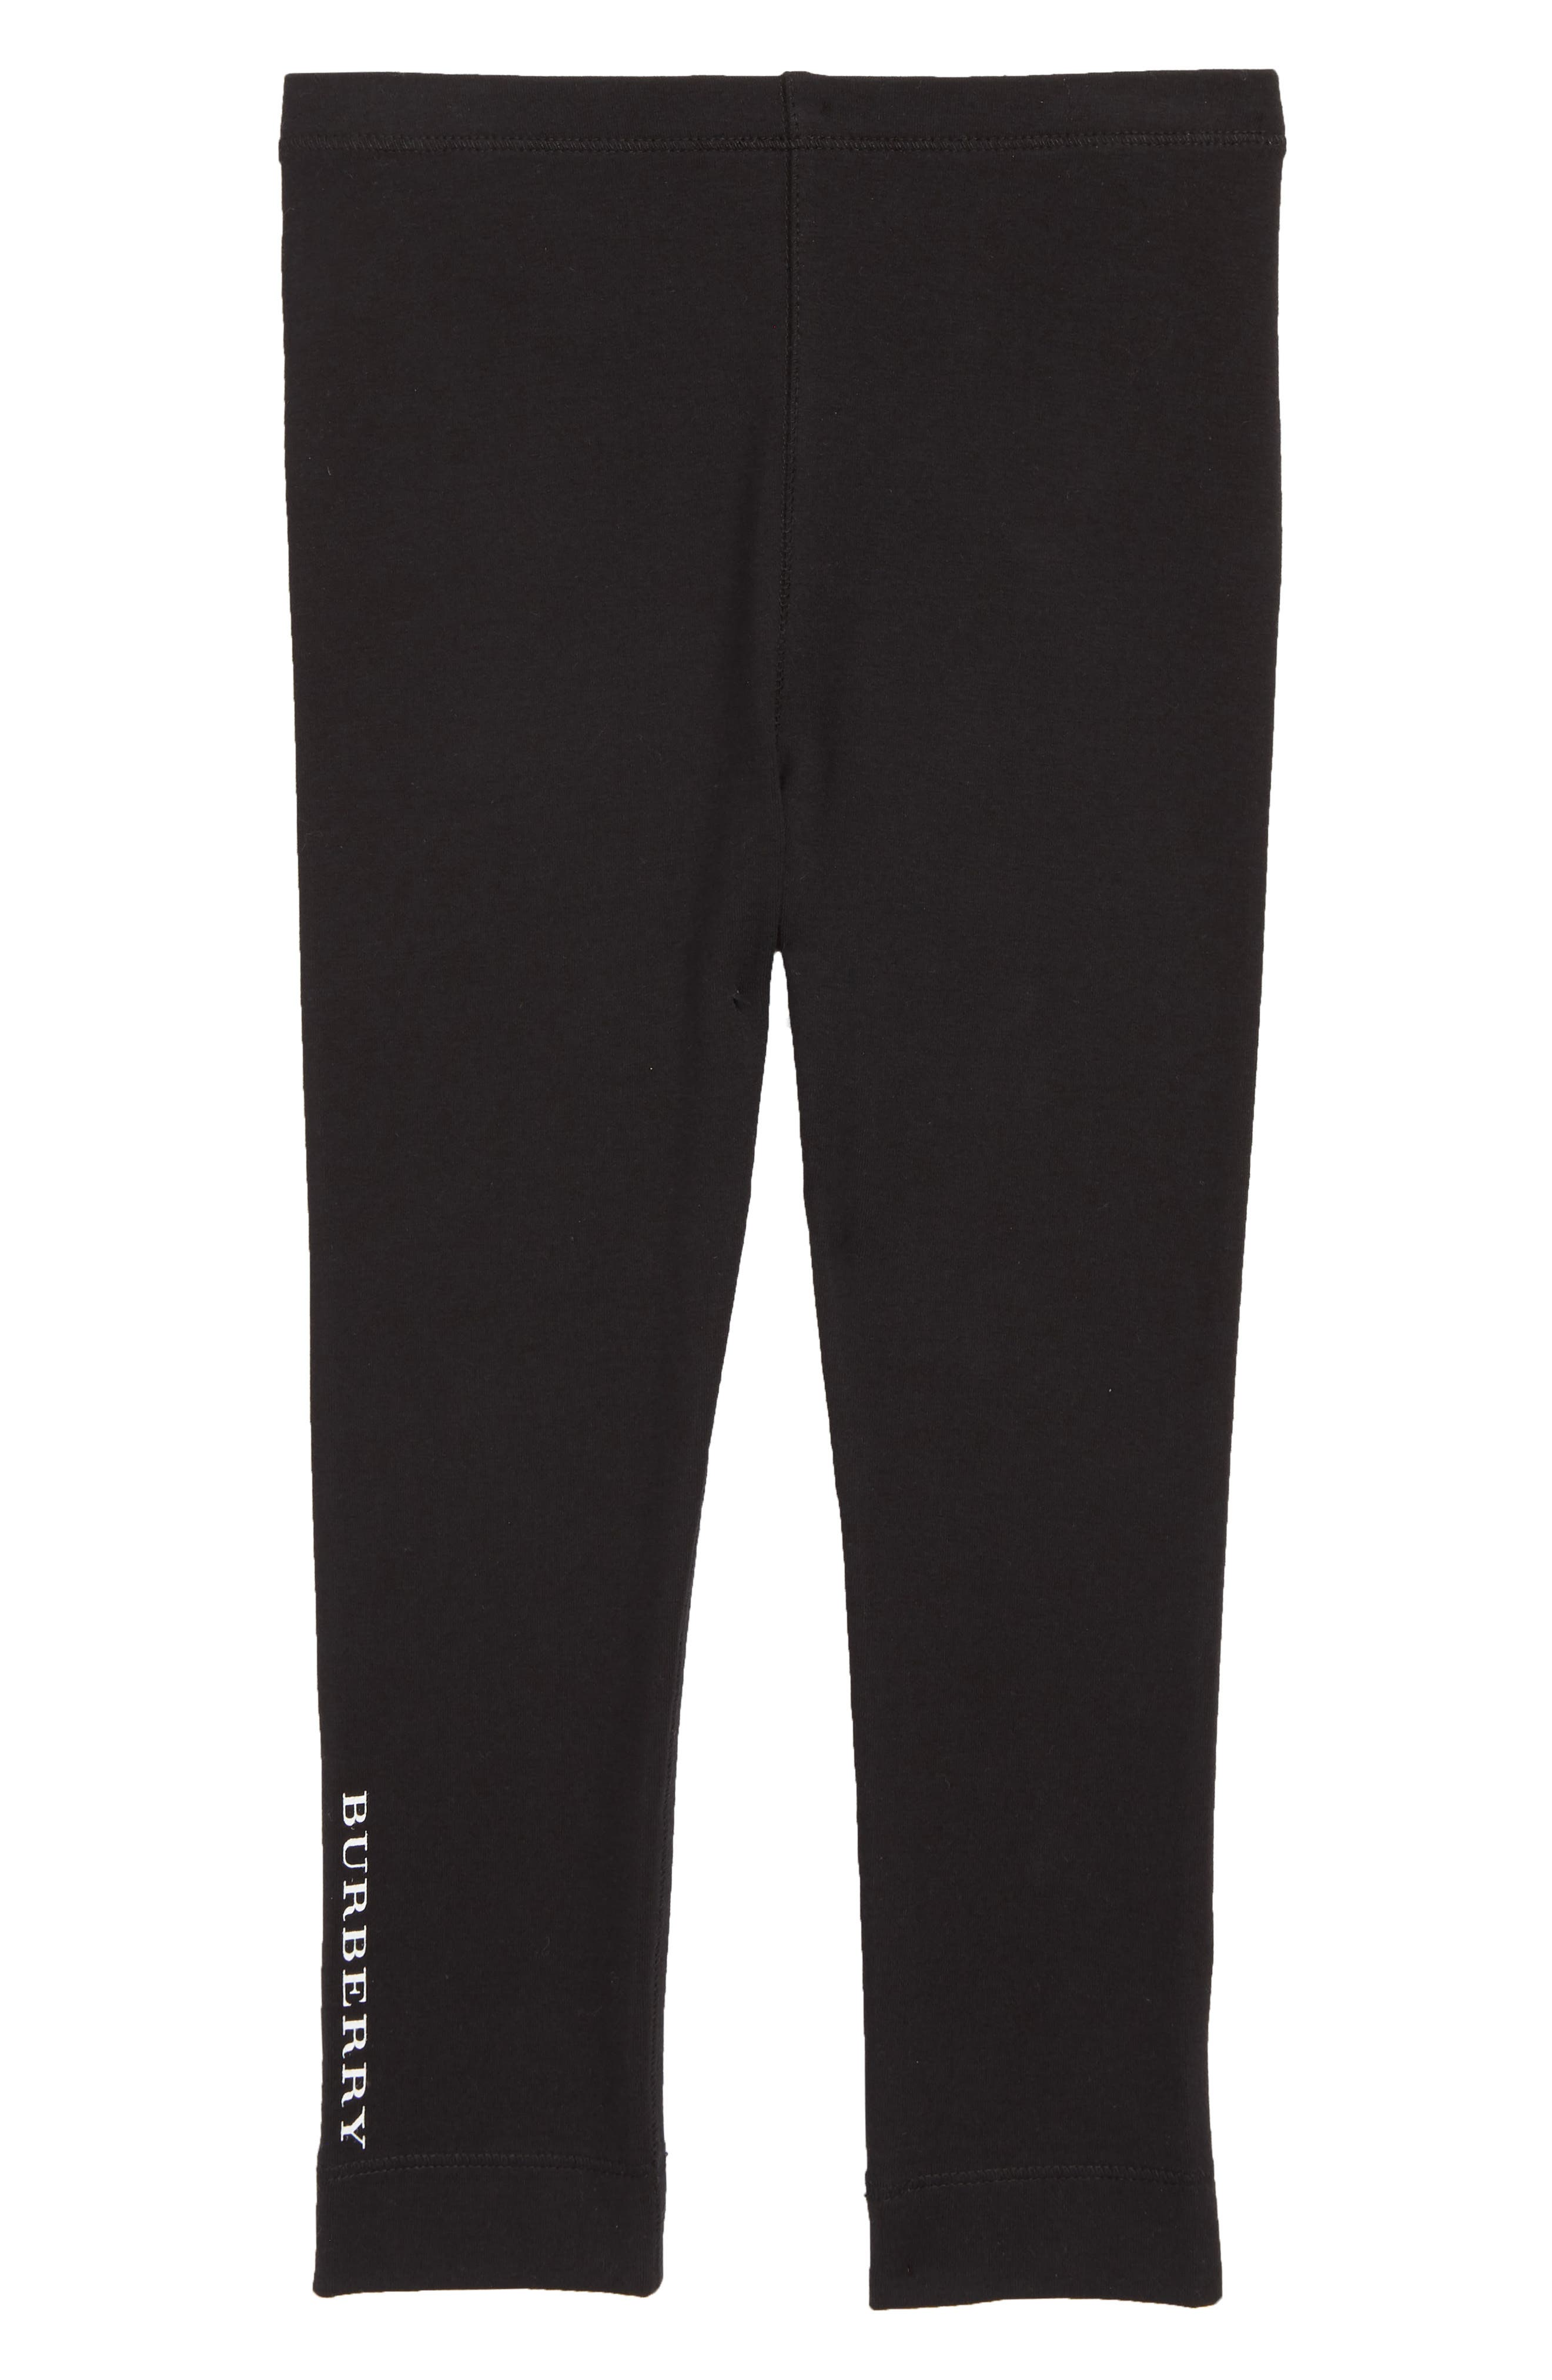 Penny Leggings,                             Main thumbnail 1, color,                             BLACK